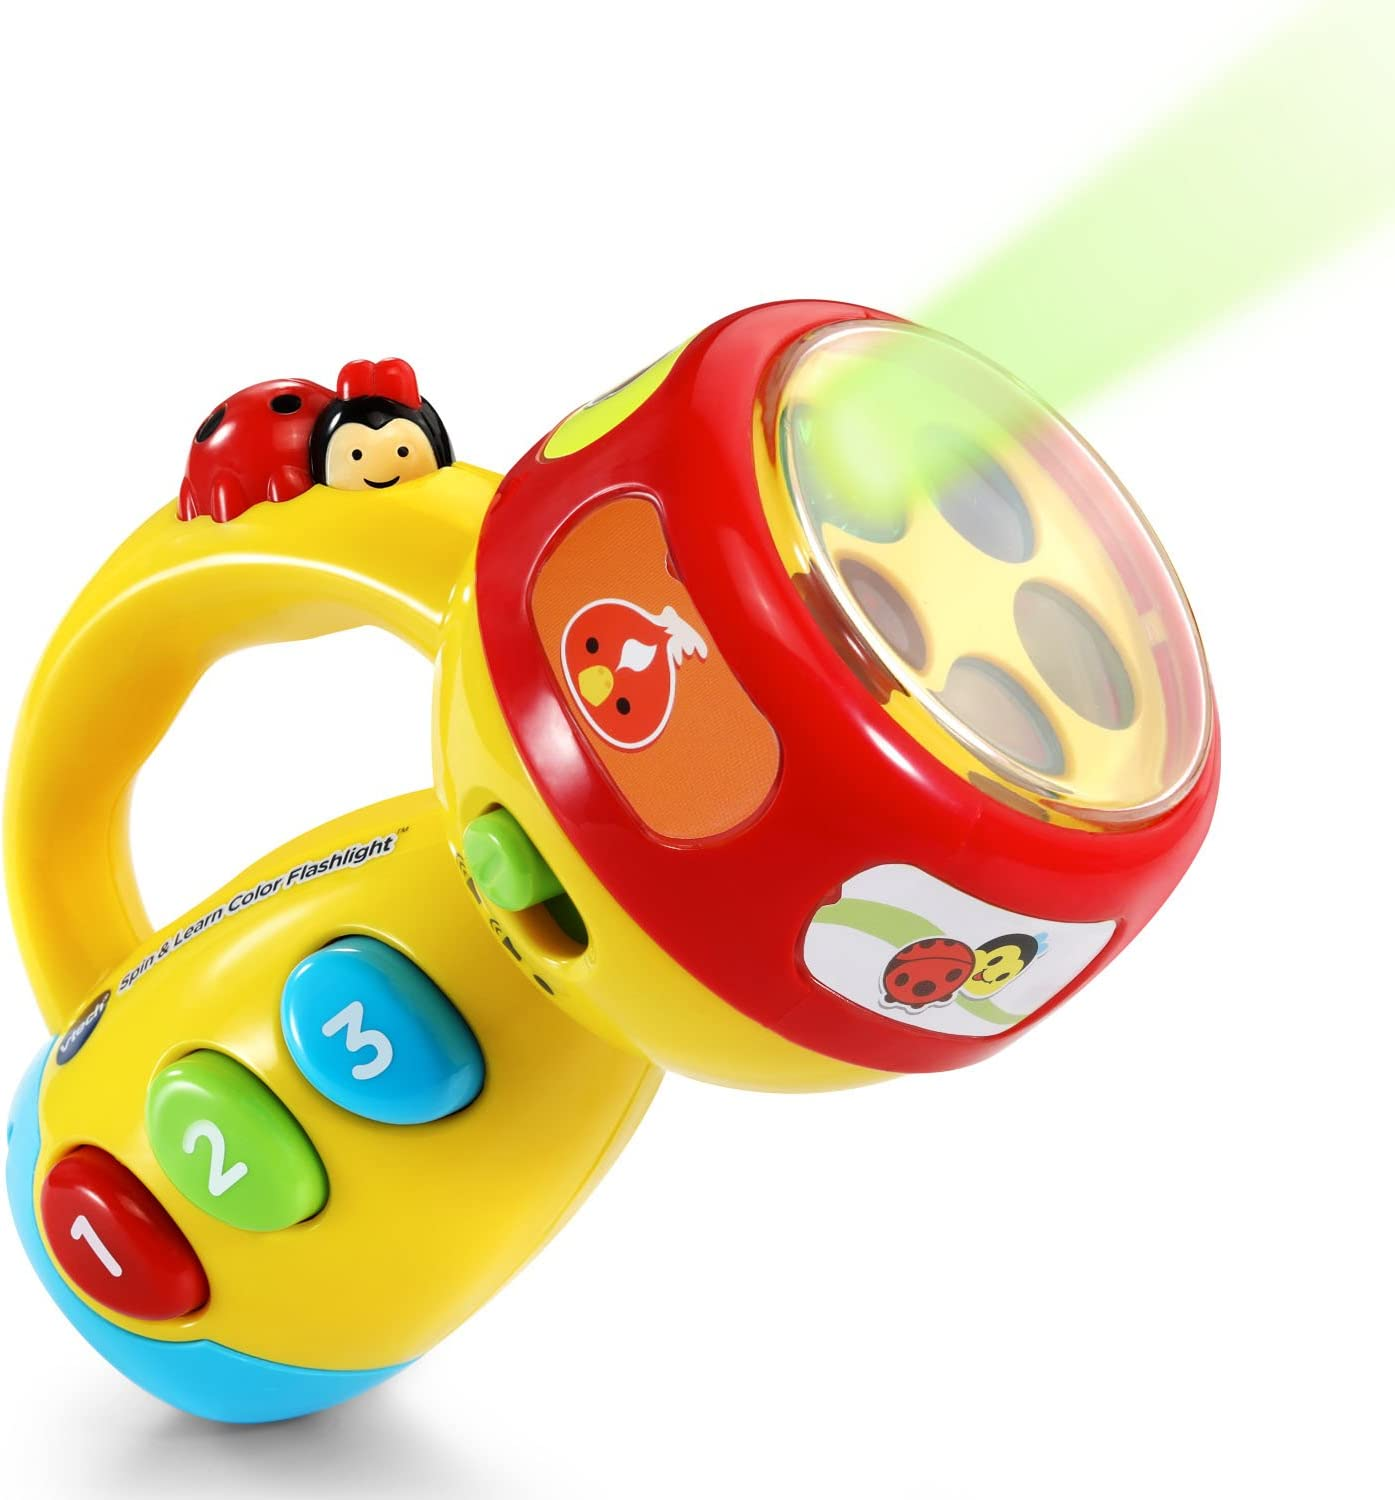 Image of a VTEC spin and learn colored flashlight.